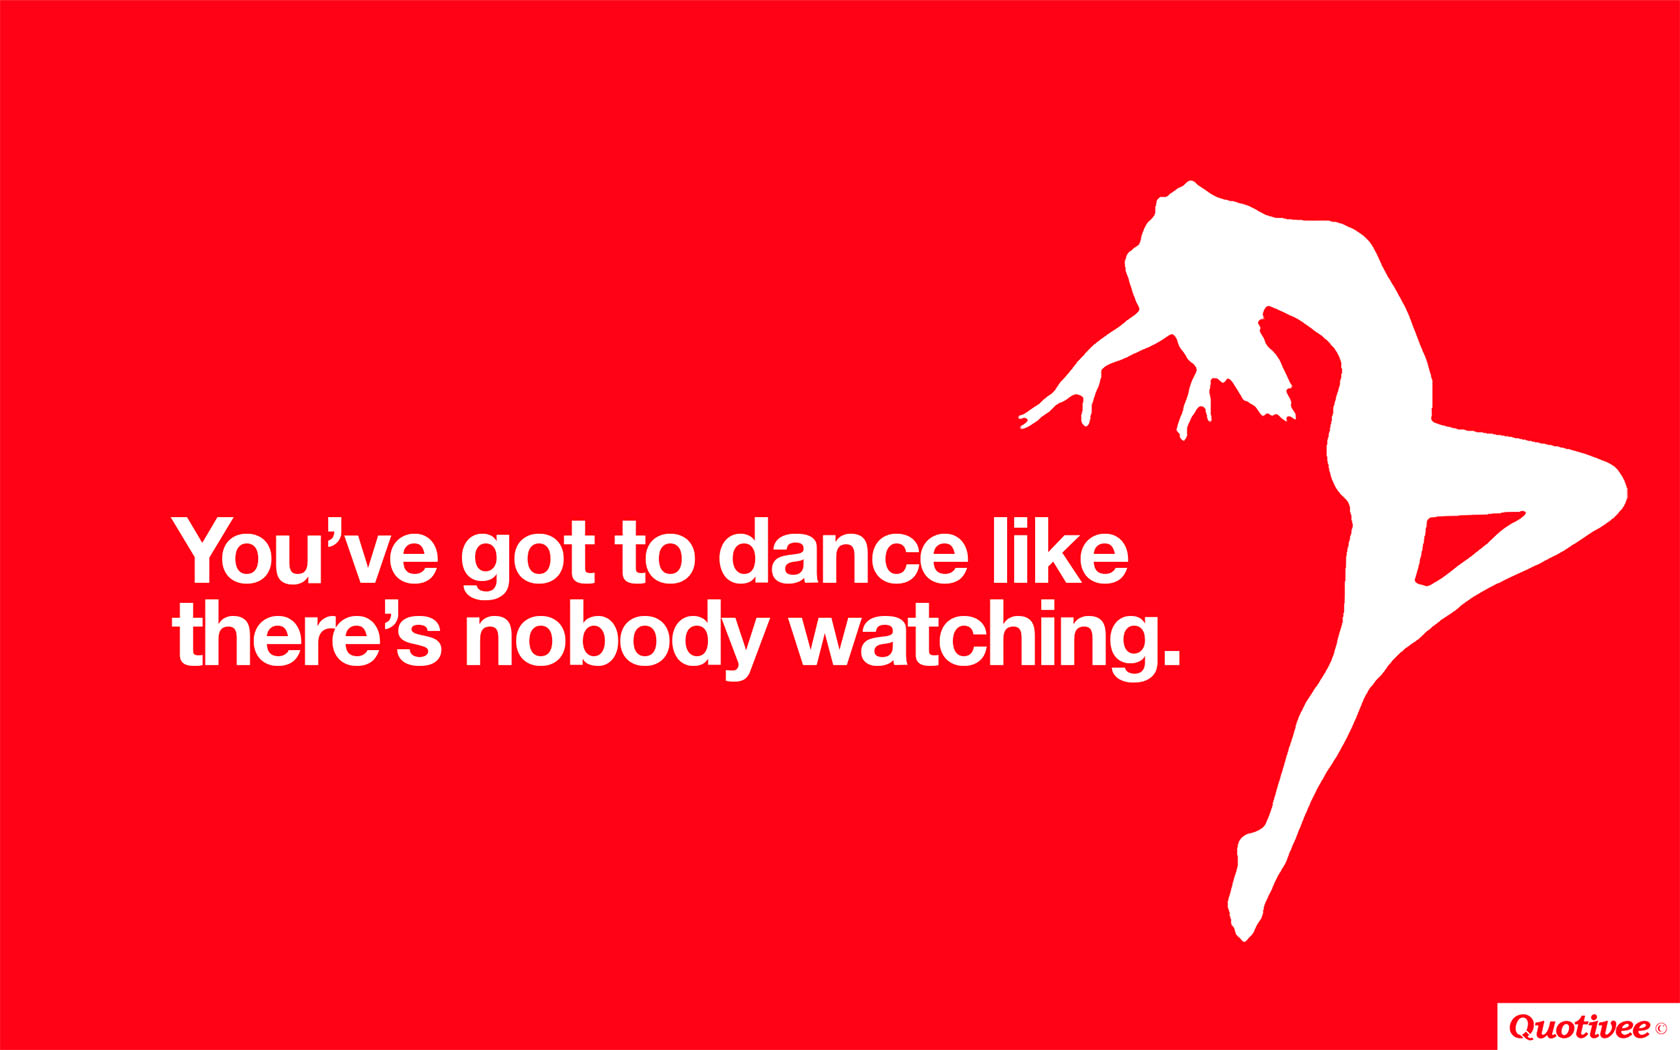 You've Got To Dance - Inspirational Quotes